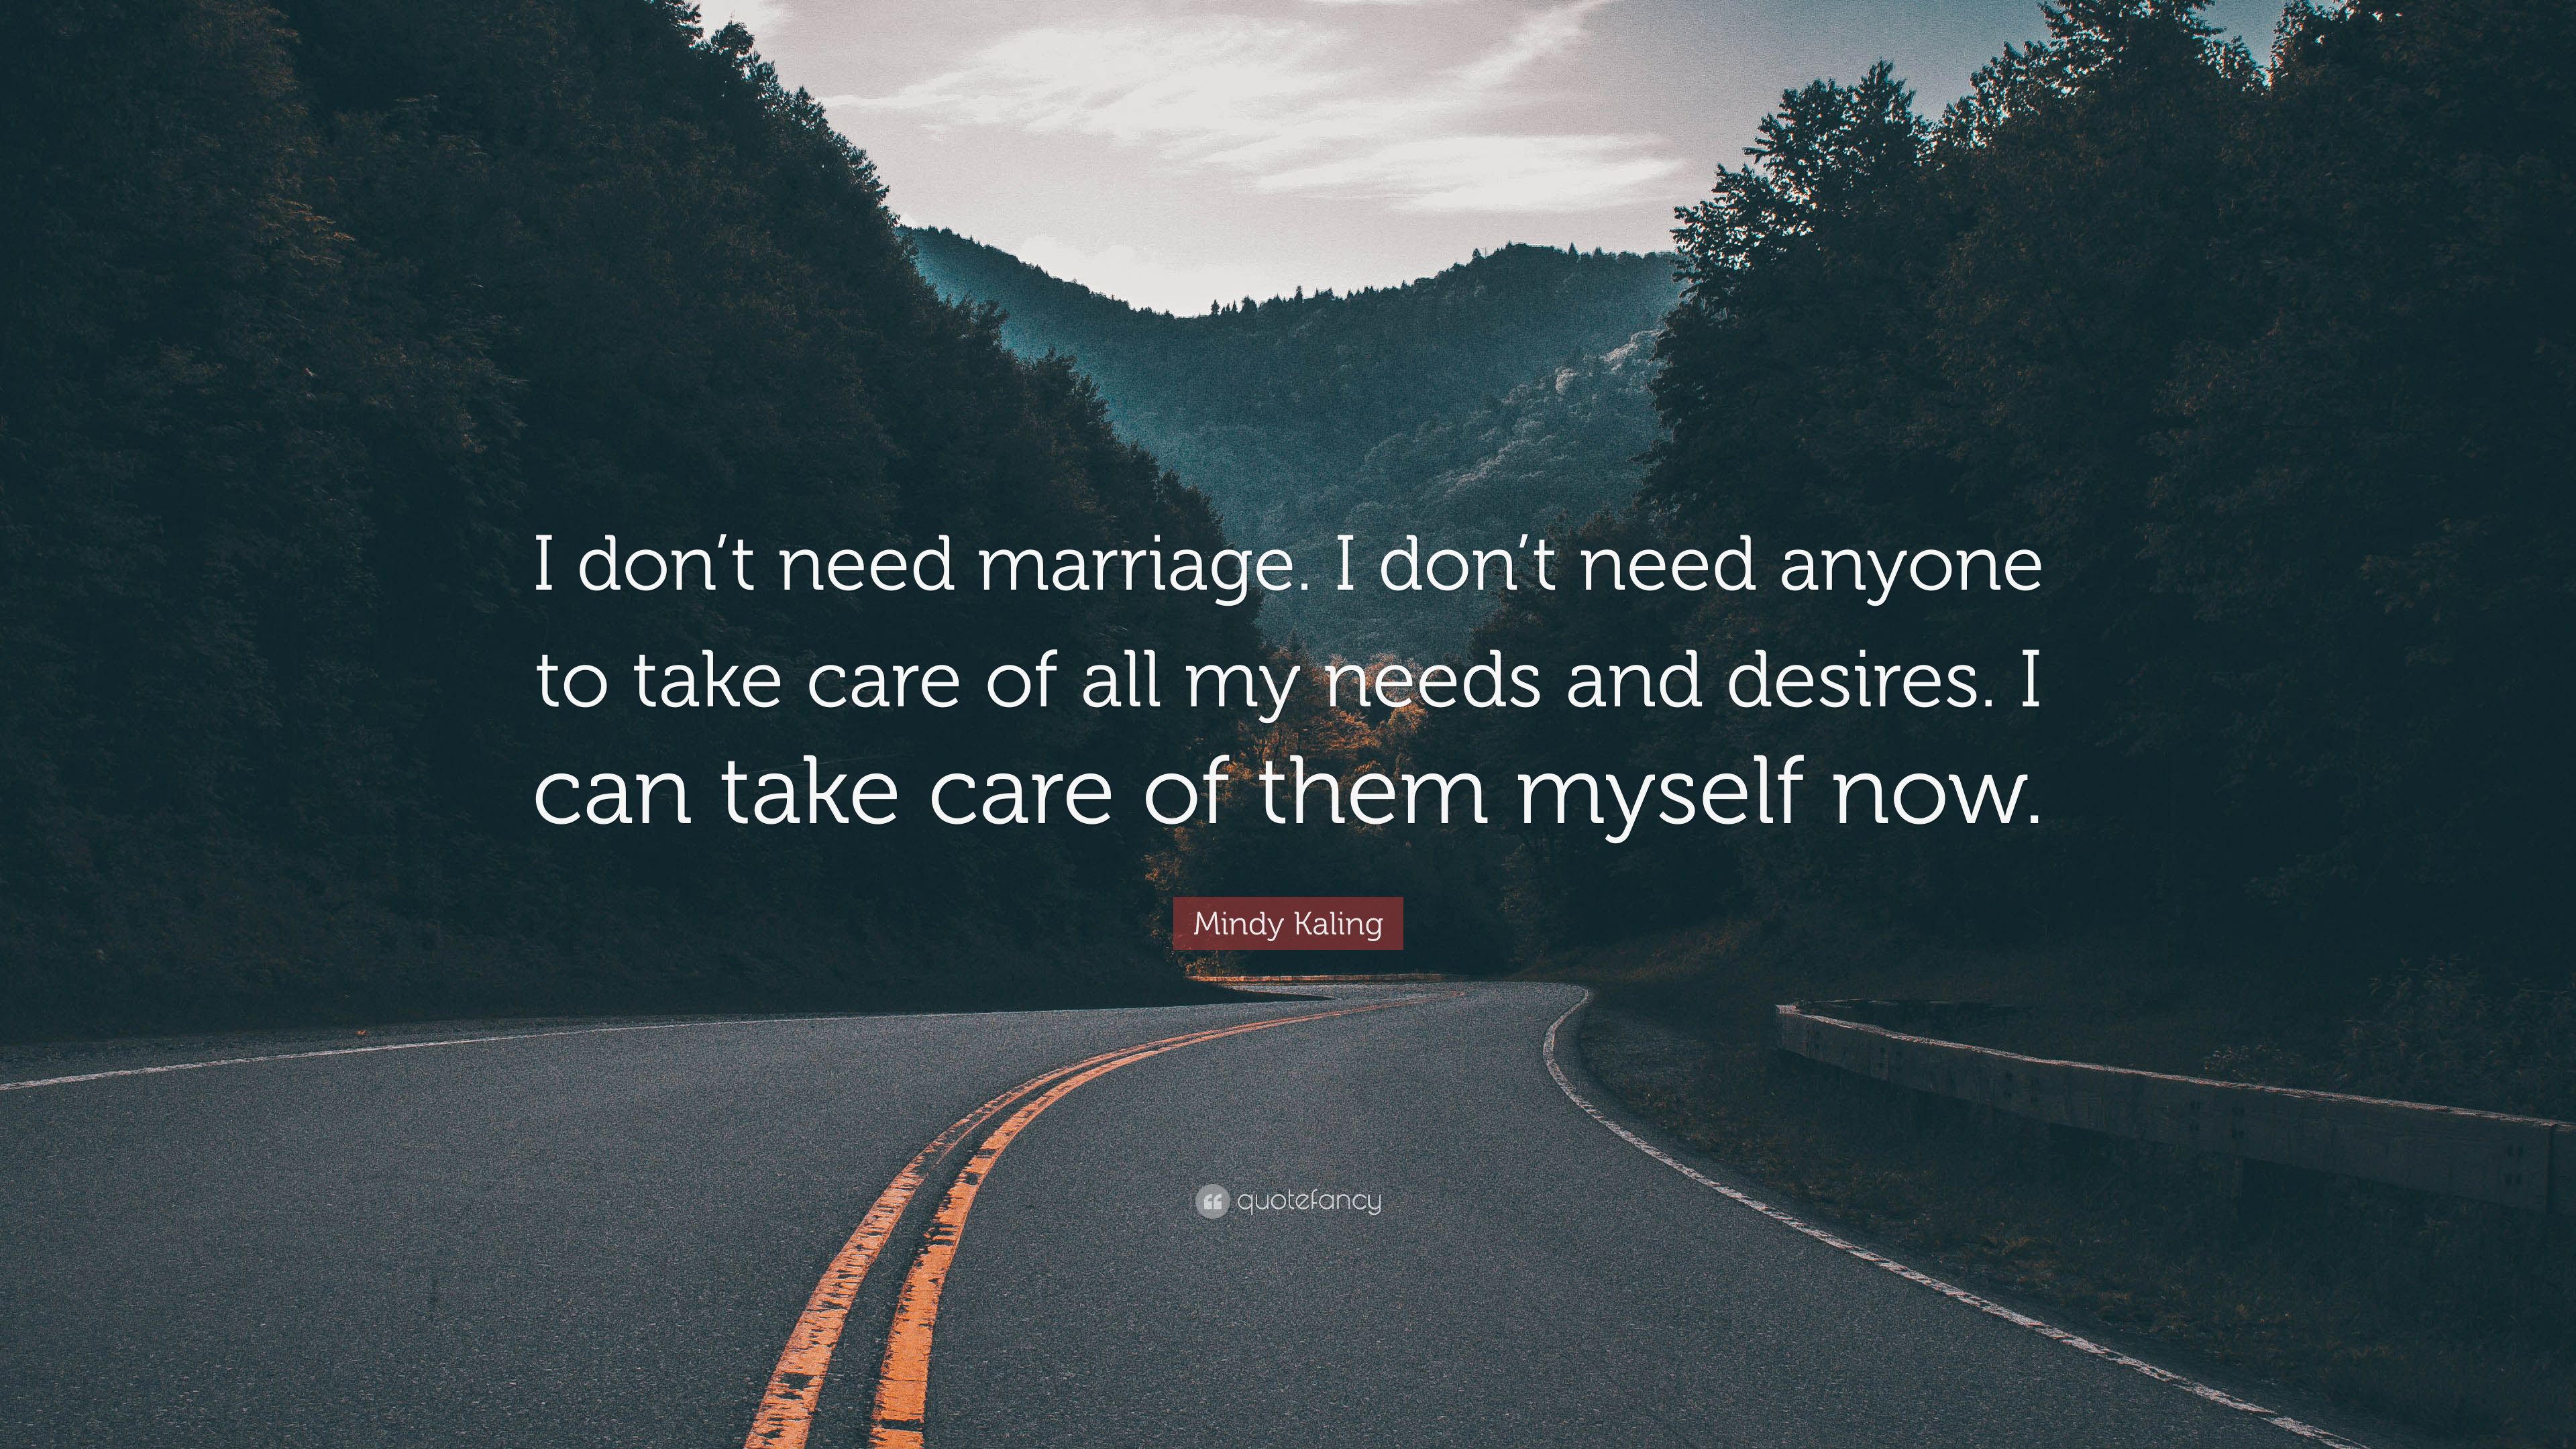 Mindy Kaling Quote I Don T Need Marriage I Don T Need Anyone To Take Care Of All My Needs And Desires I Can Take Care Of Them Myself Now 7 Wallpapers Quotefancy